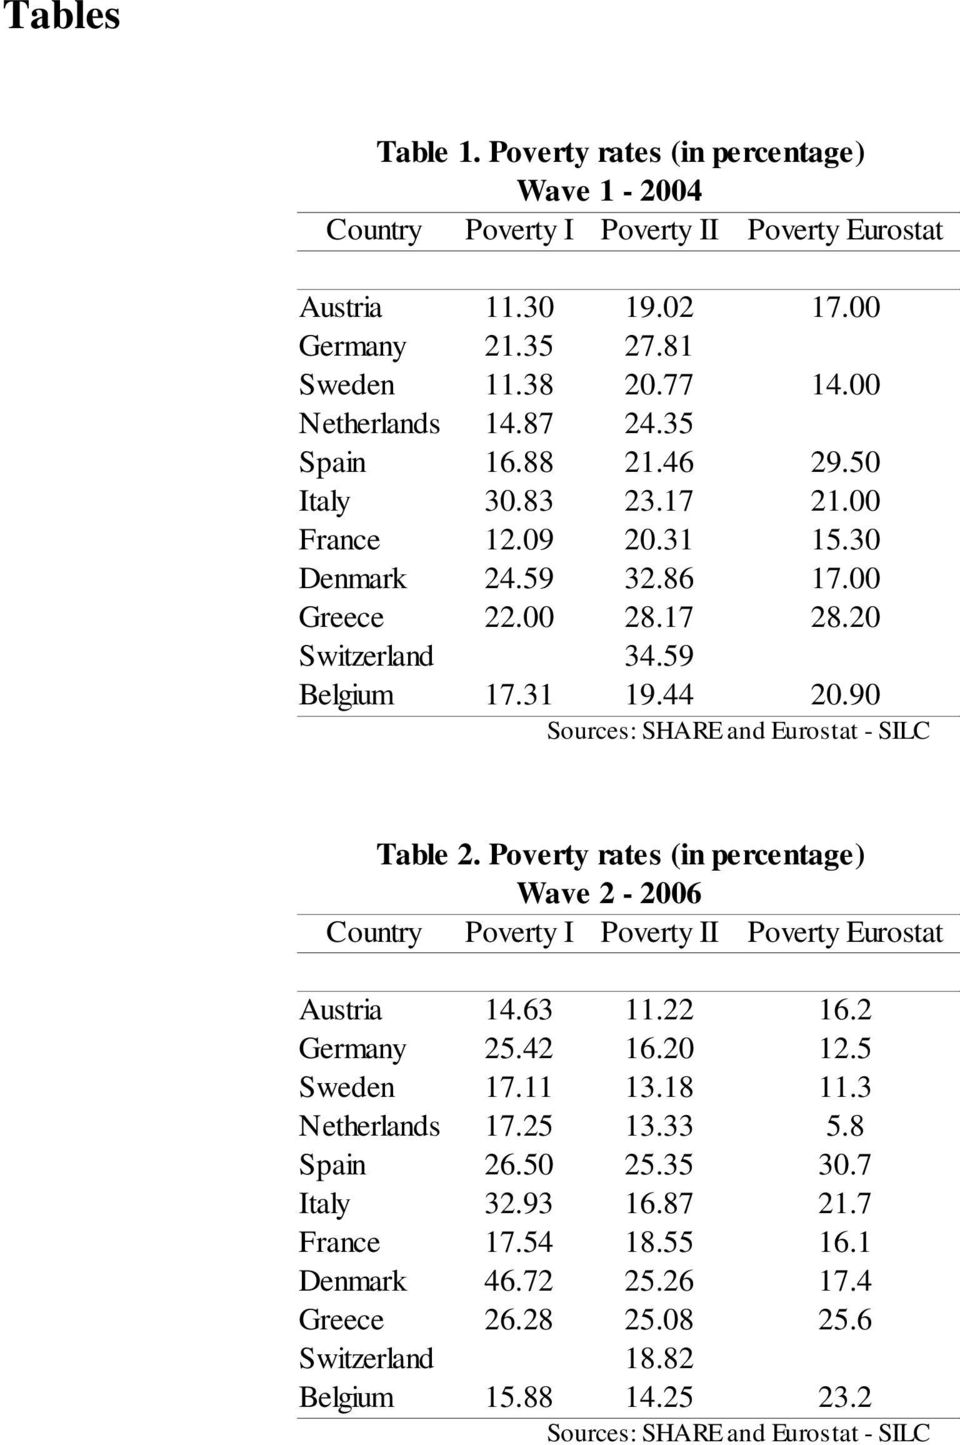 90 Sources: SHARE and Eurostat - SILC Table 2. Poverty rates (in percentage) Wave 2-2006 Country Poverty I Poverty II Poverty Eurostat Austria 14.63 11.22 16.2 Germany 25.42 16.20 12.5 Sweden 17.